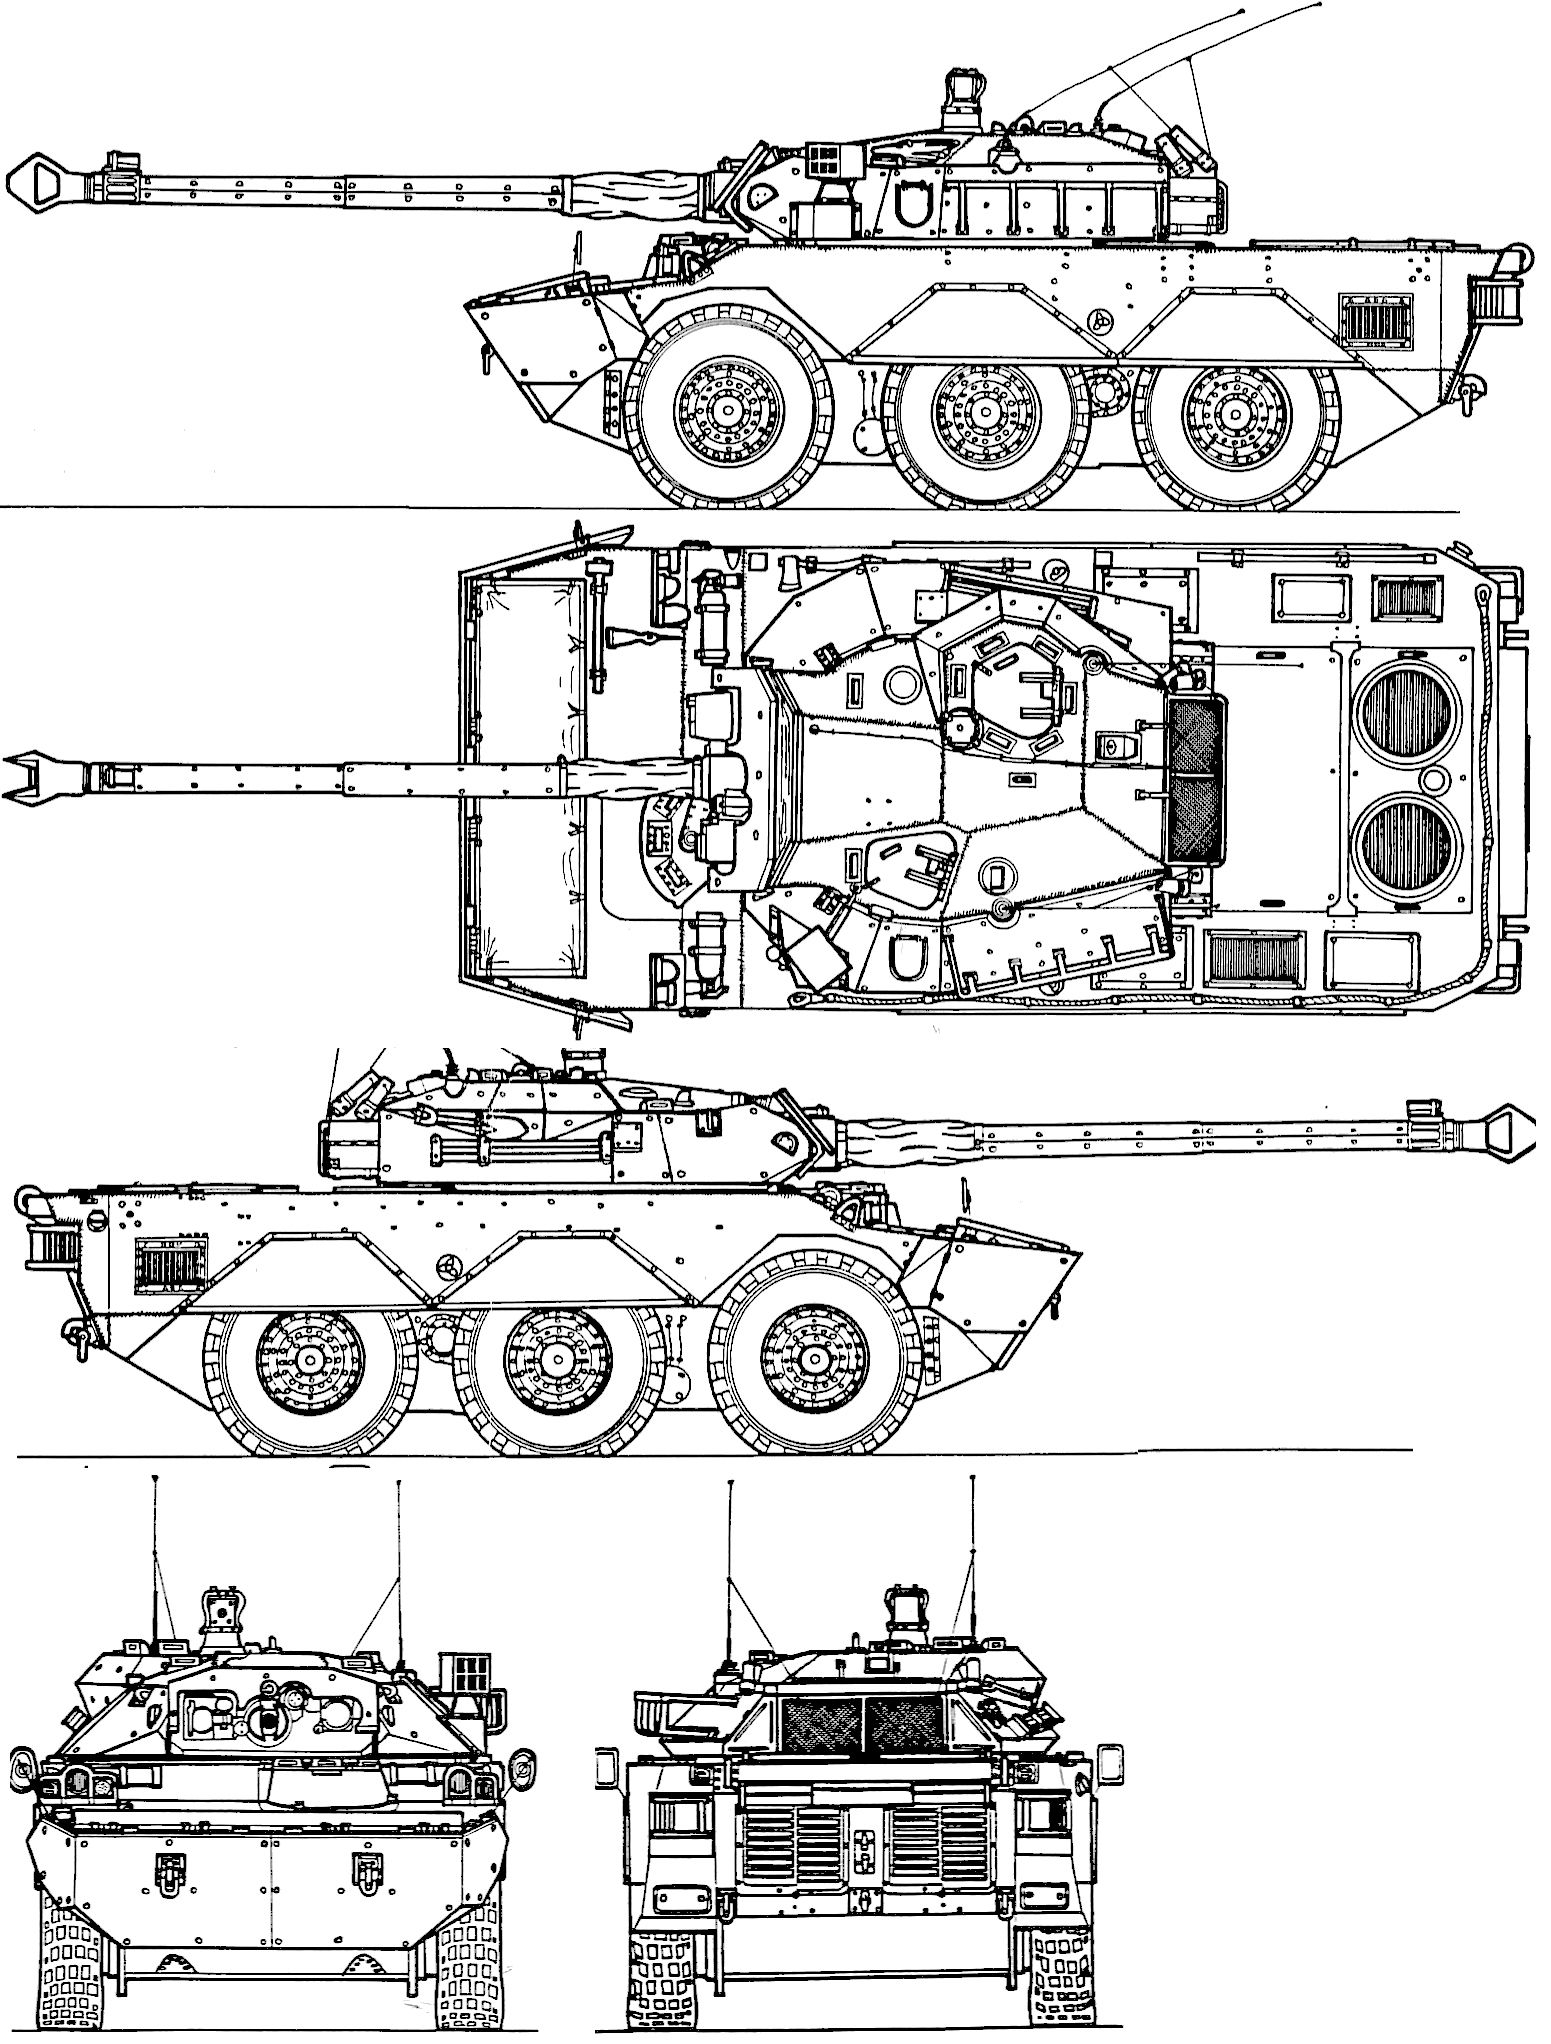 Maz 543p Blueprint Army Russland